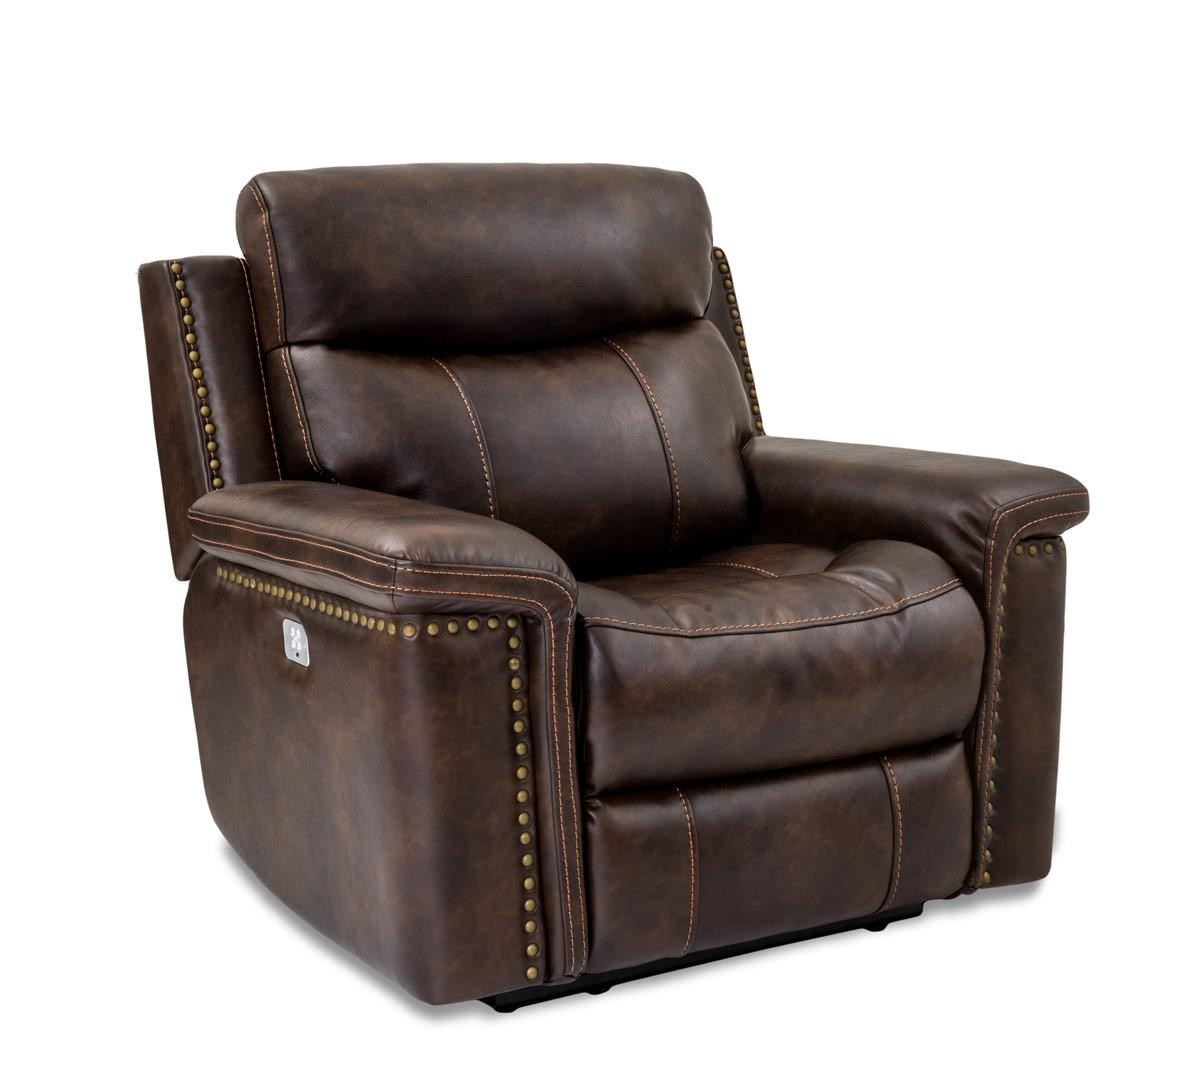 Cheers Sofa Phoenix Leather Pwr Recl w/Pwr Head & Foot - Item Number: XW5258HM L1-1LFEH 3537